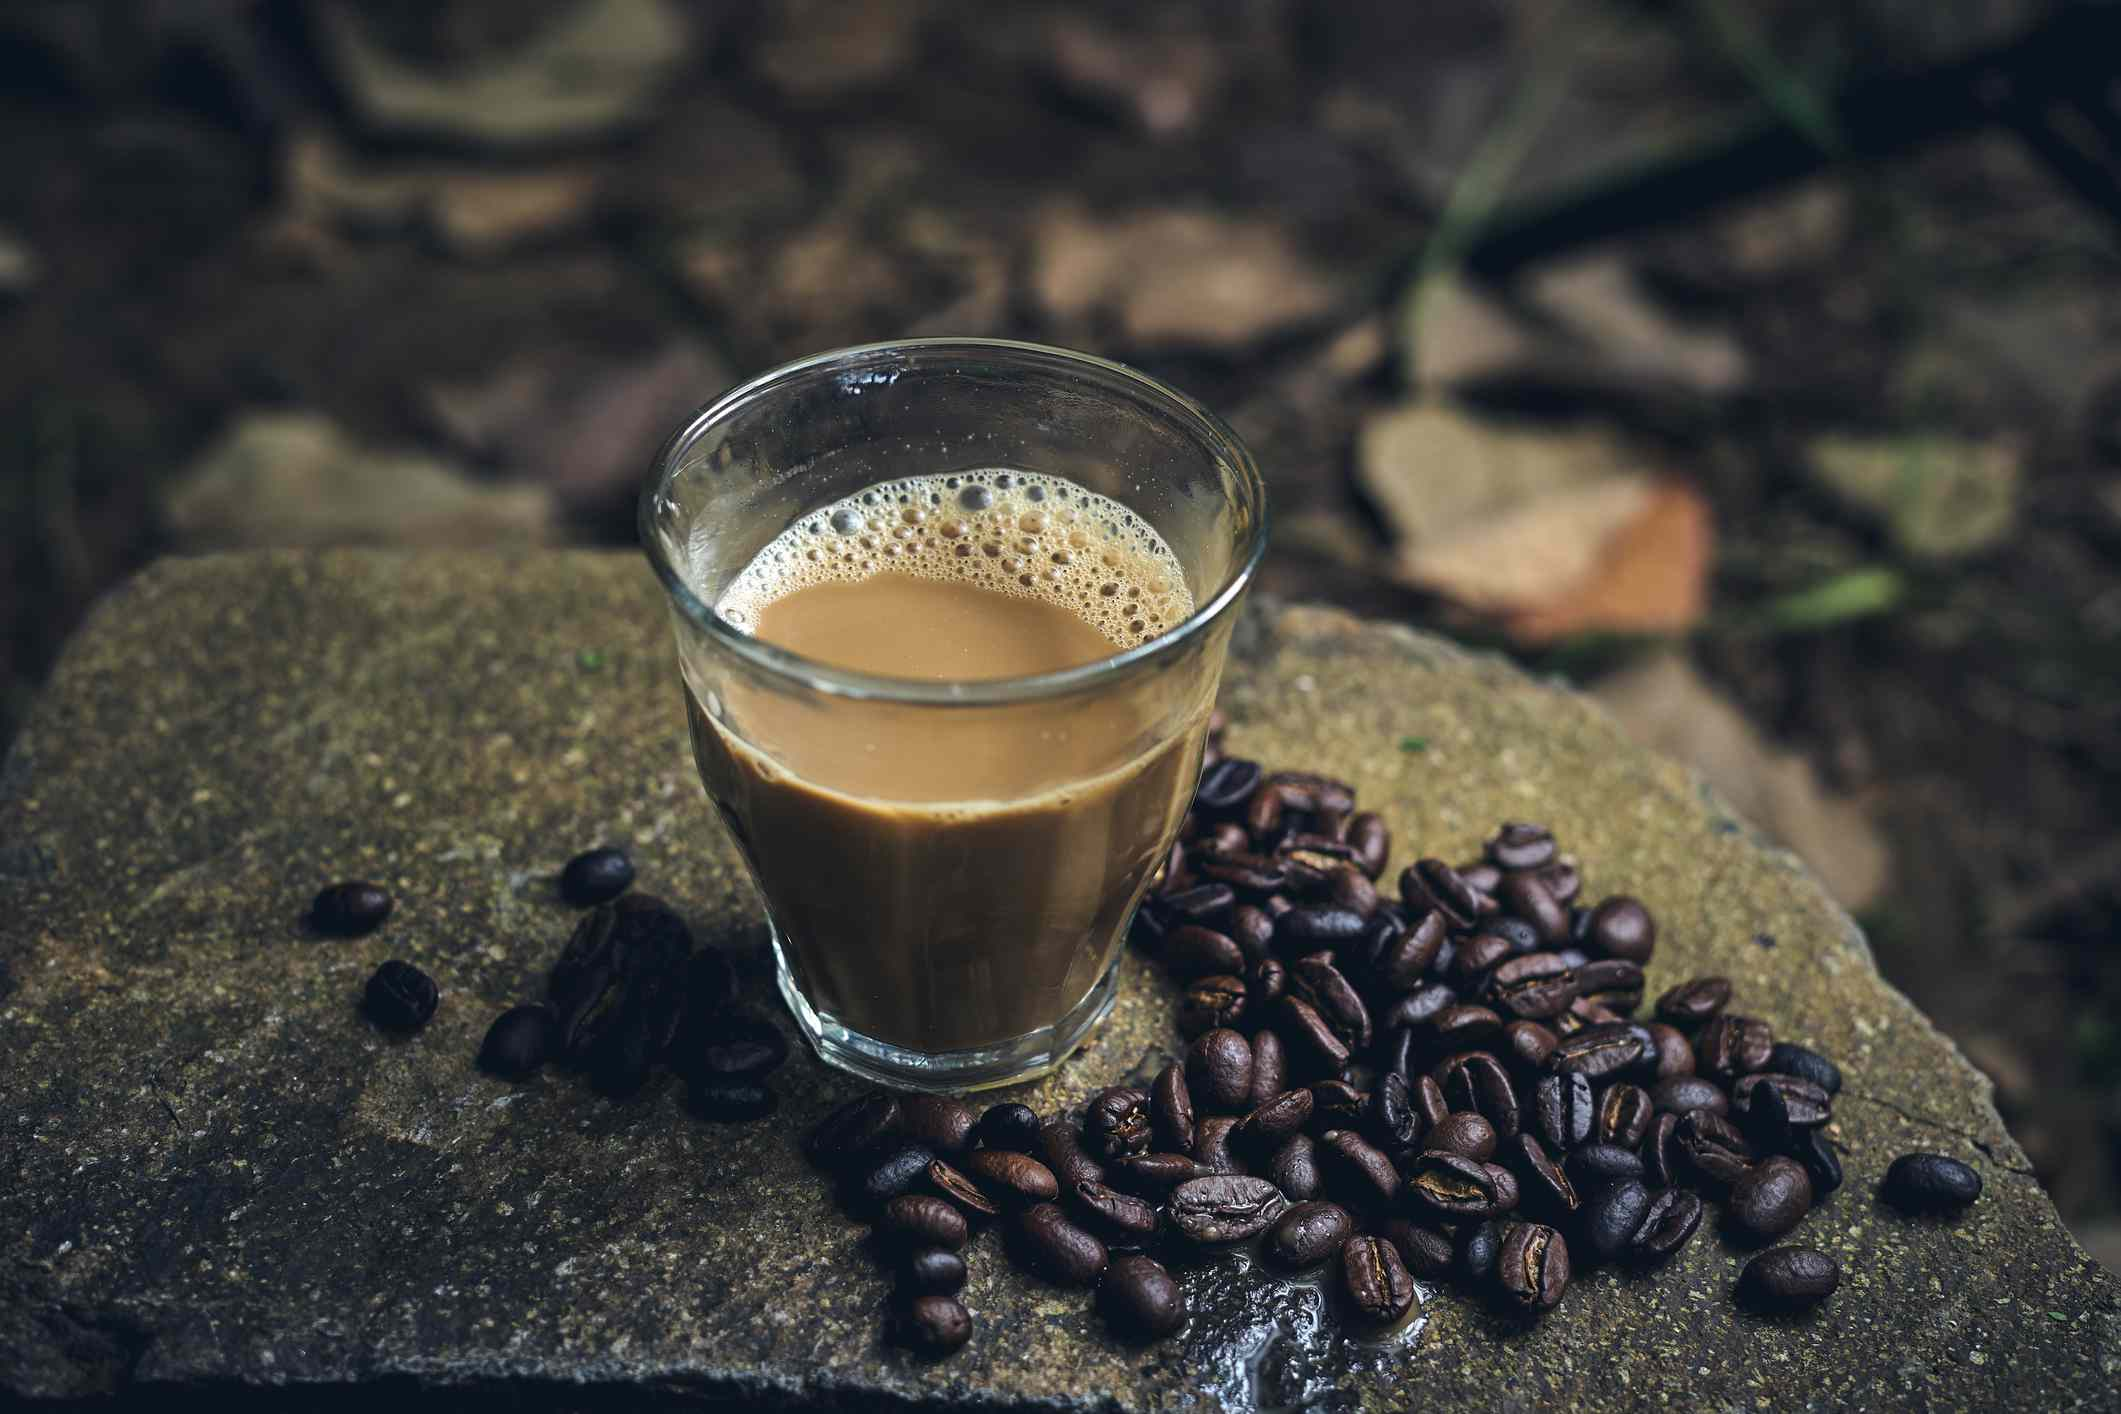 A glass of Traditional Indonesian Coffee with milk on a rock in a forest with roasted coffee beans